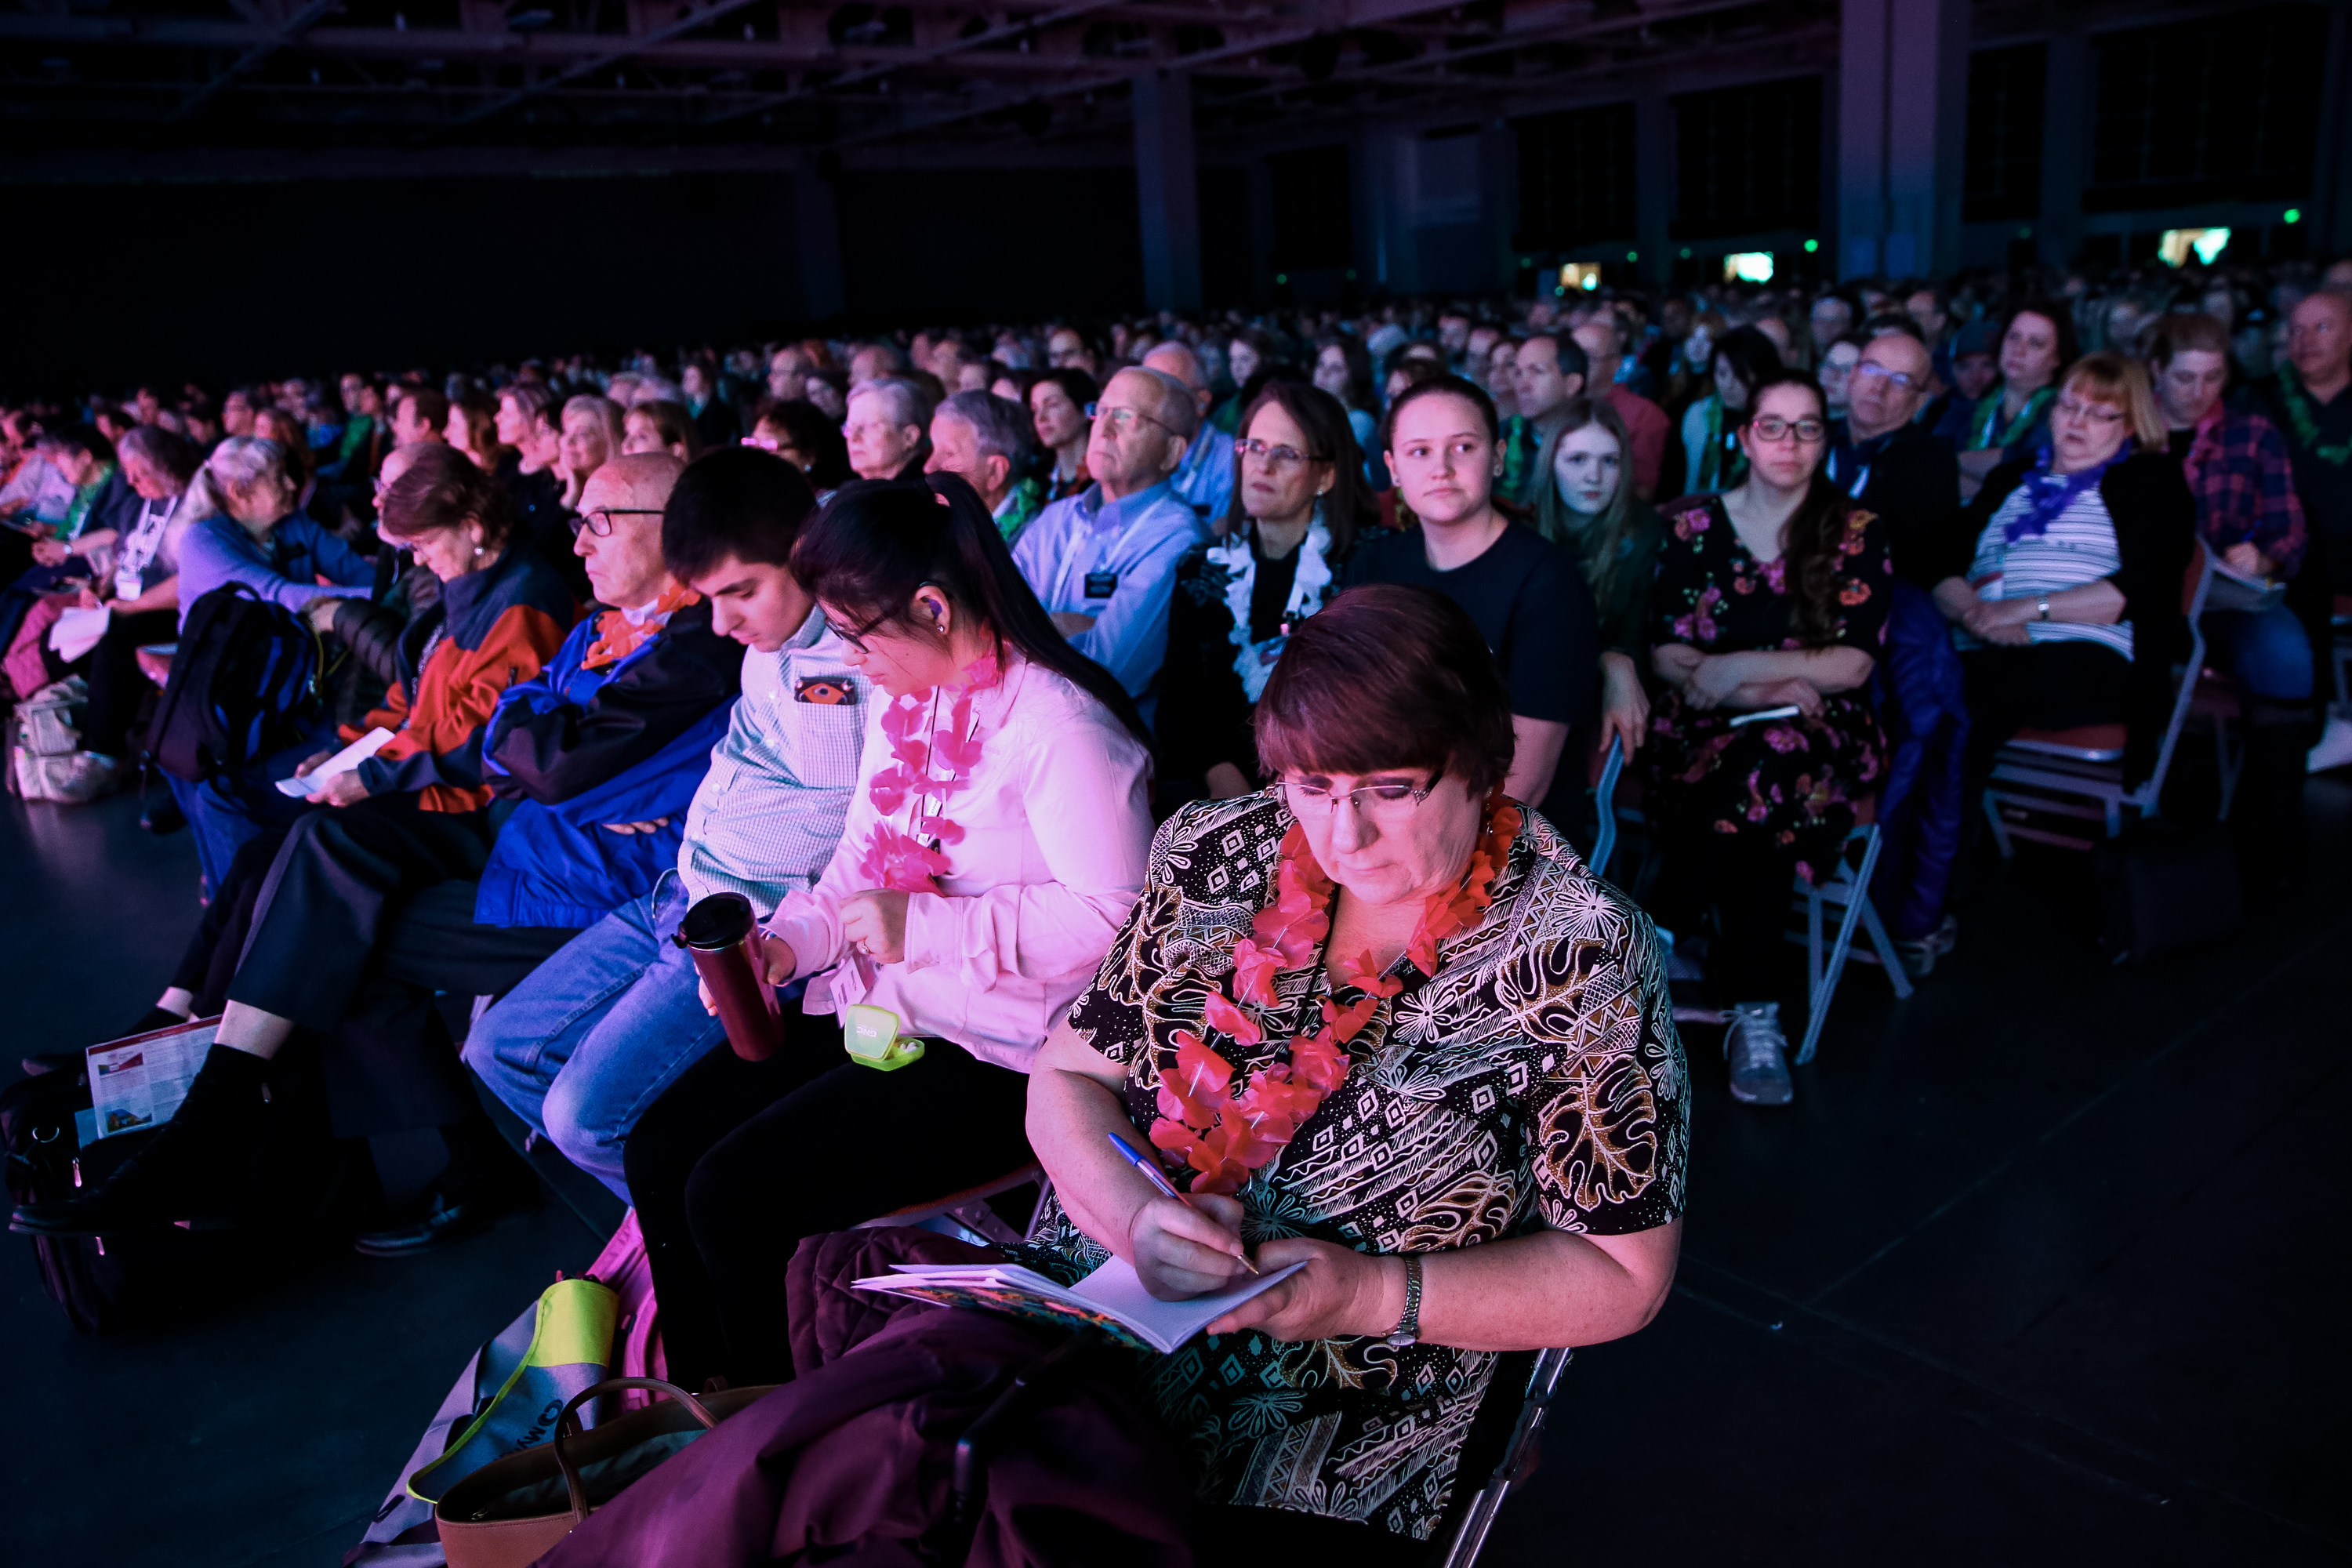 Shari Kone takes notes as Elder David A. Bednar of the Quorum of the Twelve Apostles and his wife, Sister Susan Bednar, speak during the RootsTech conference, held at the Salt Palace in Salt Lake City on Saturday, March 2, 2019.